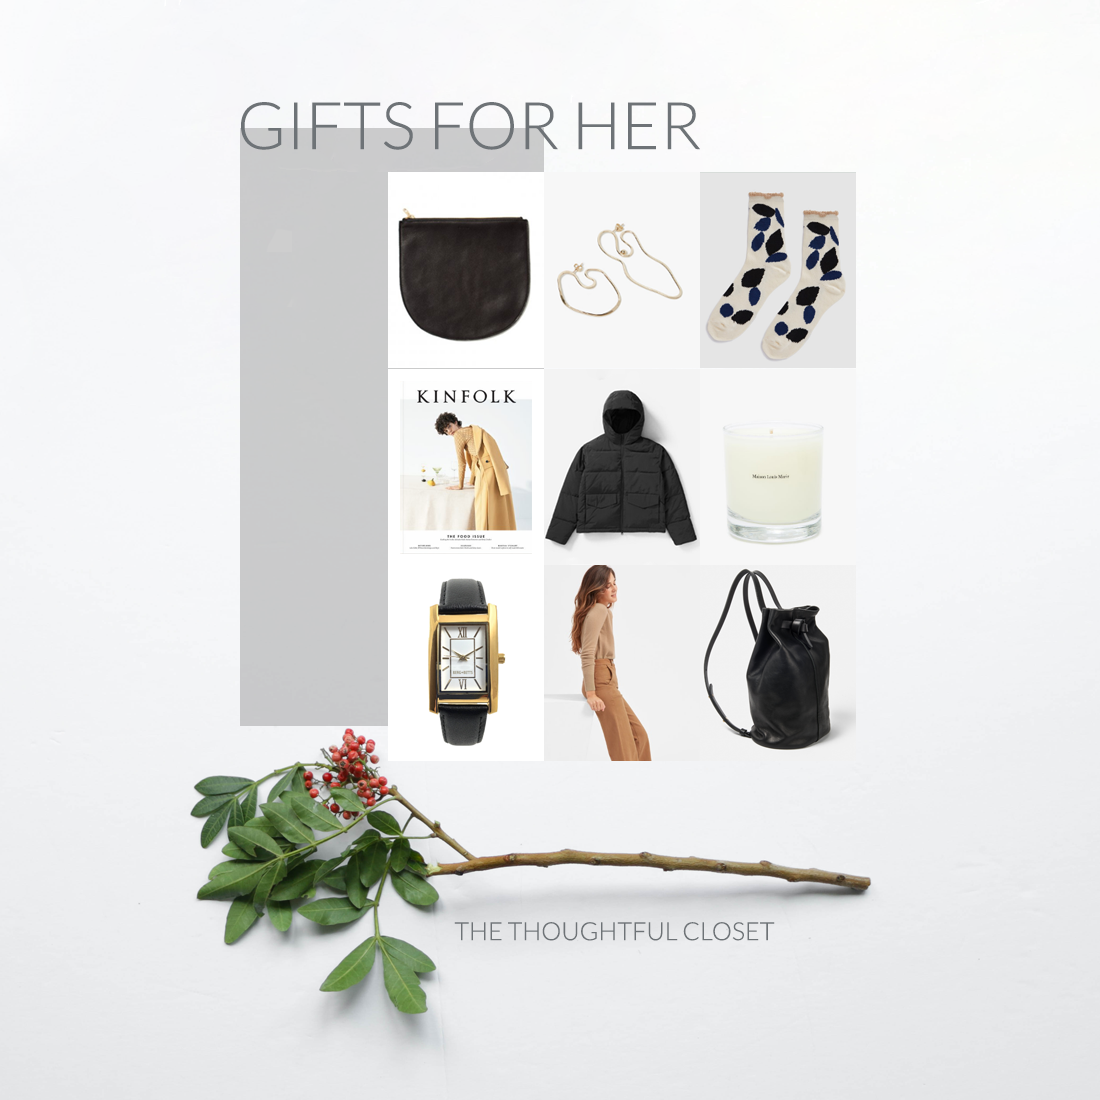 2017 gift guide template_her.png